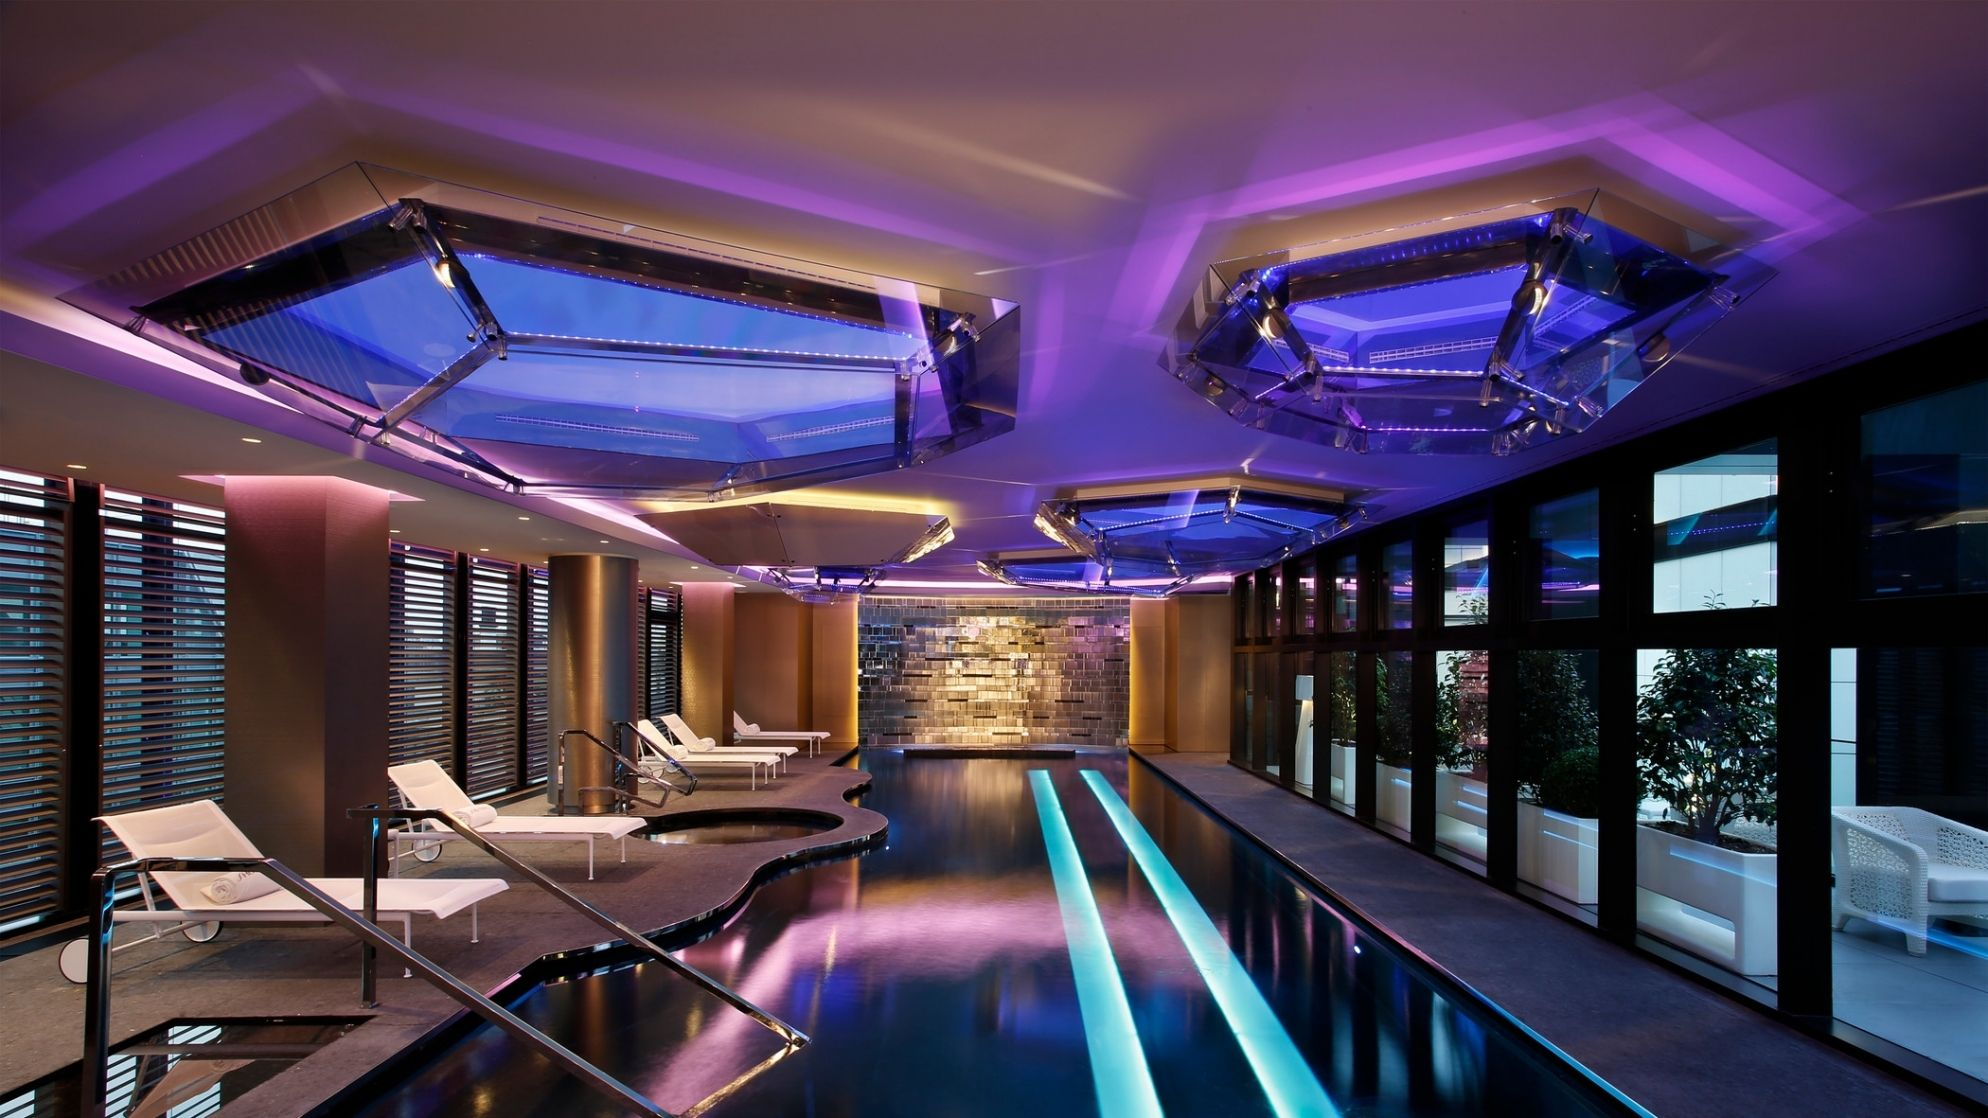 Shiseido Spa Milan relaxation